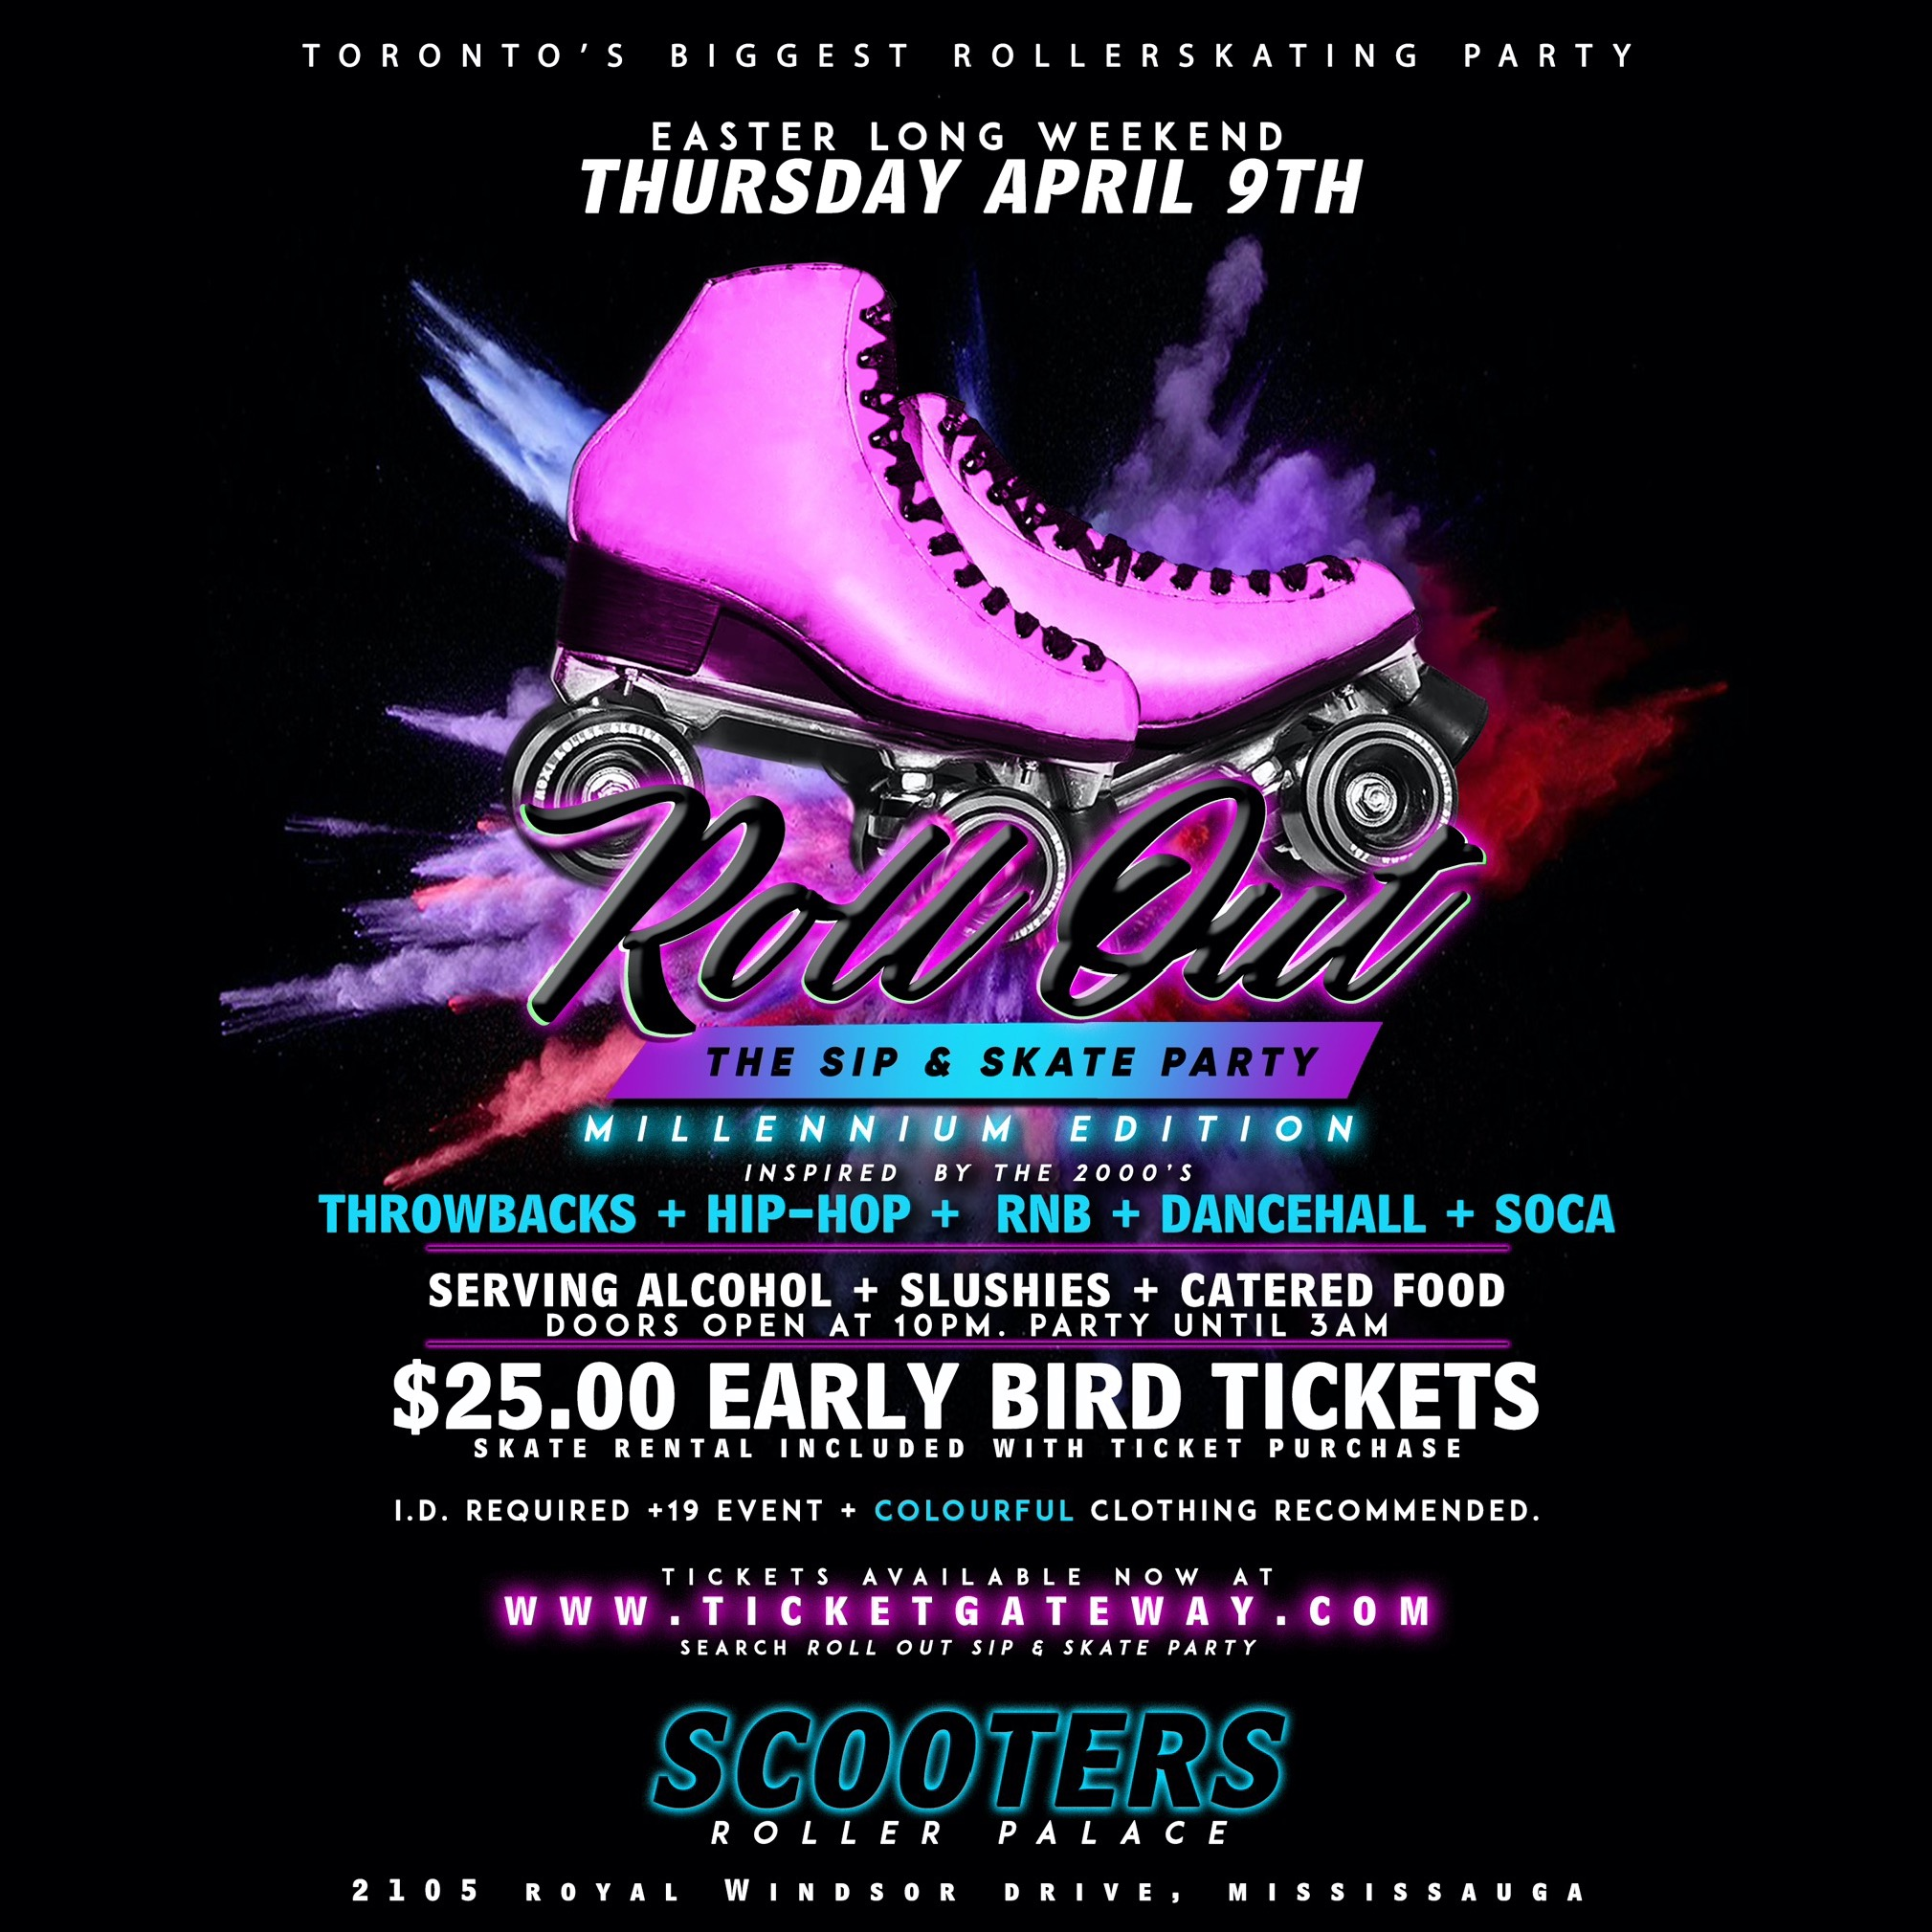 ROLL OUT - The Sip & Skate Party - Millennium Edition